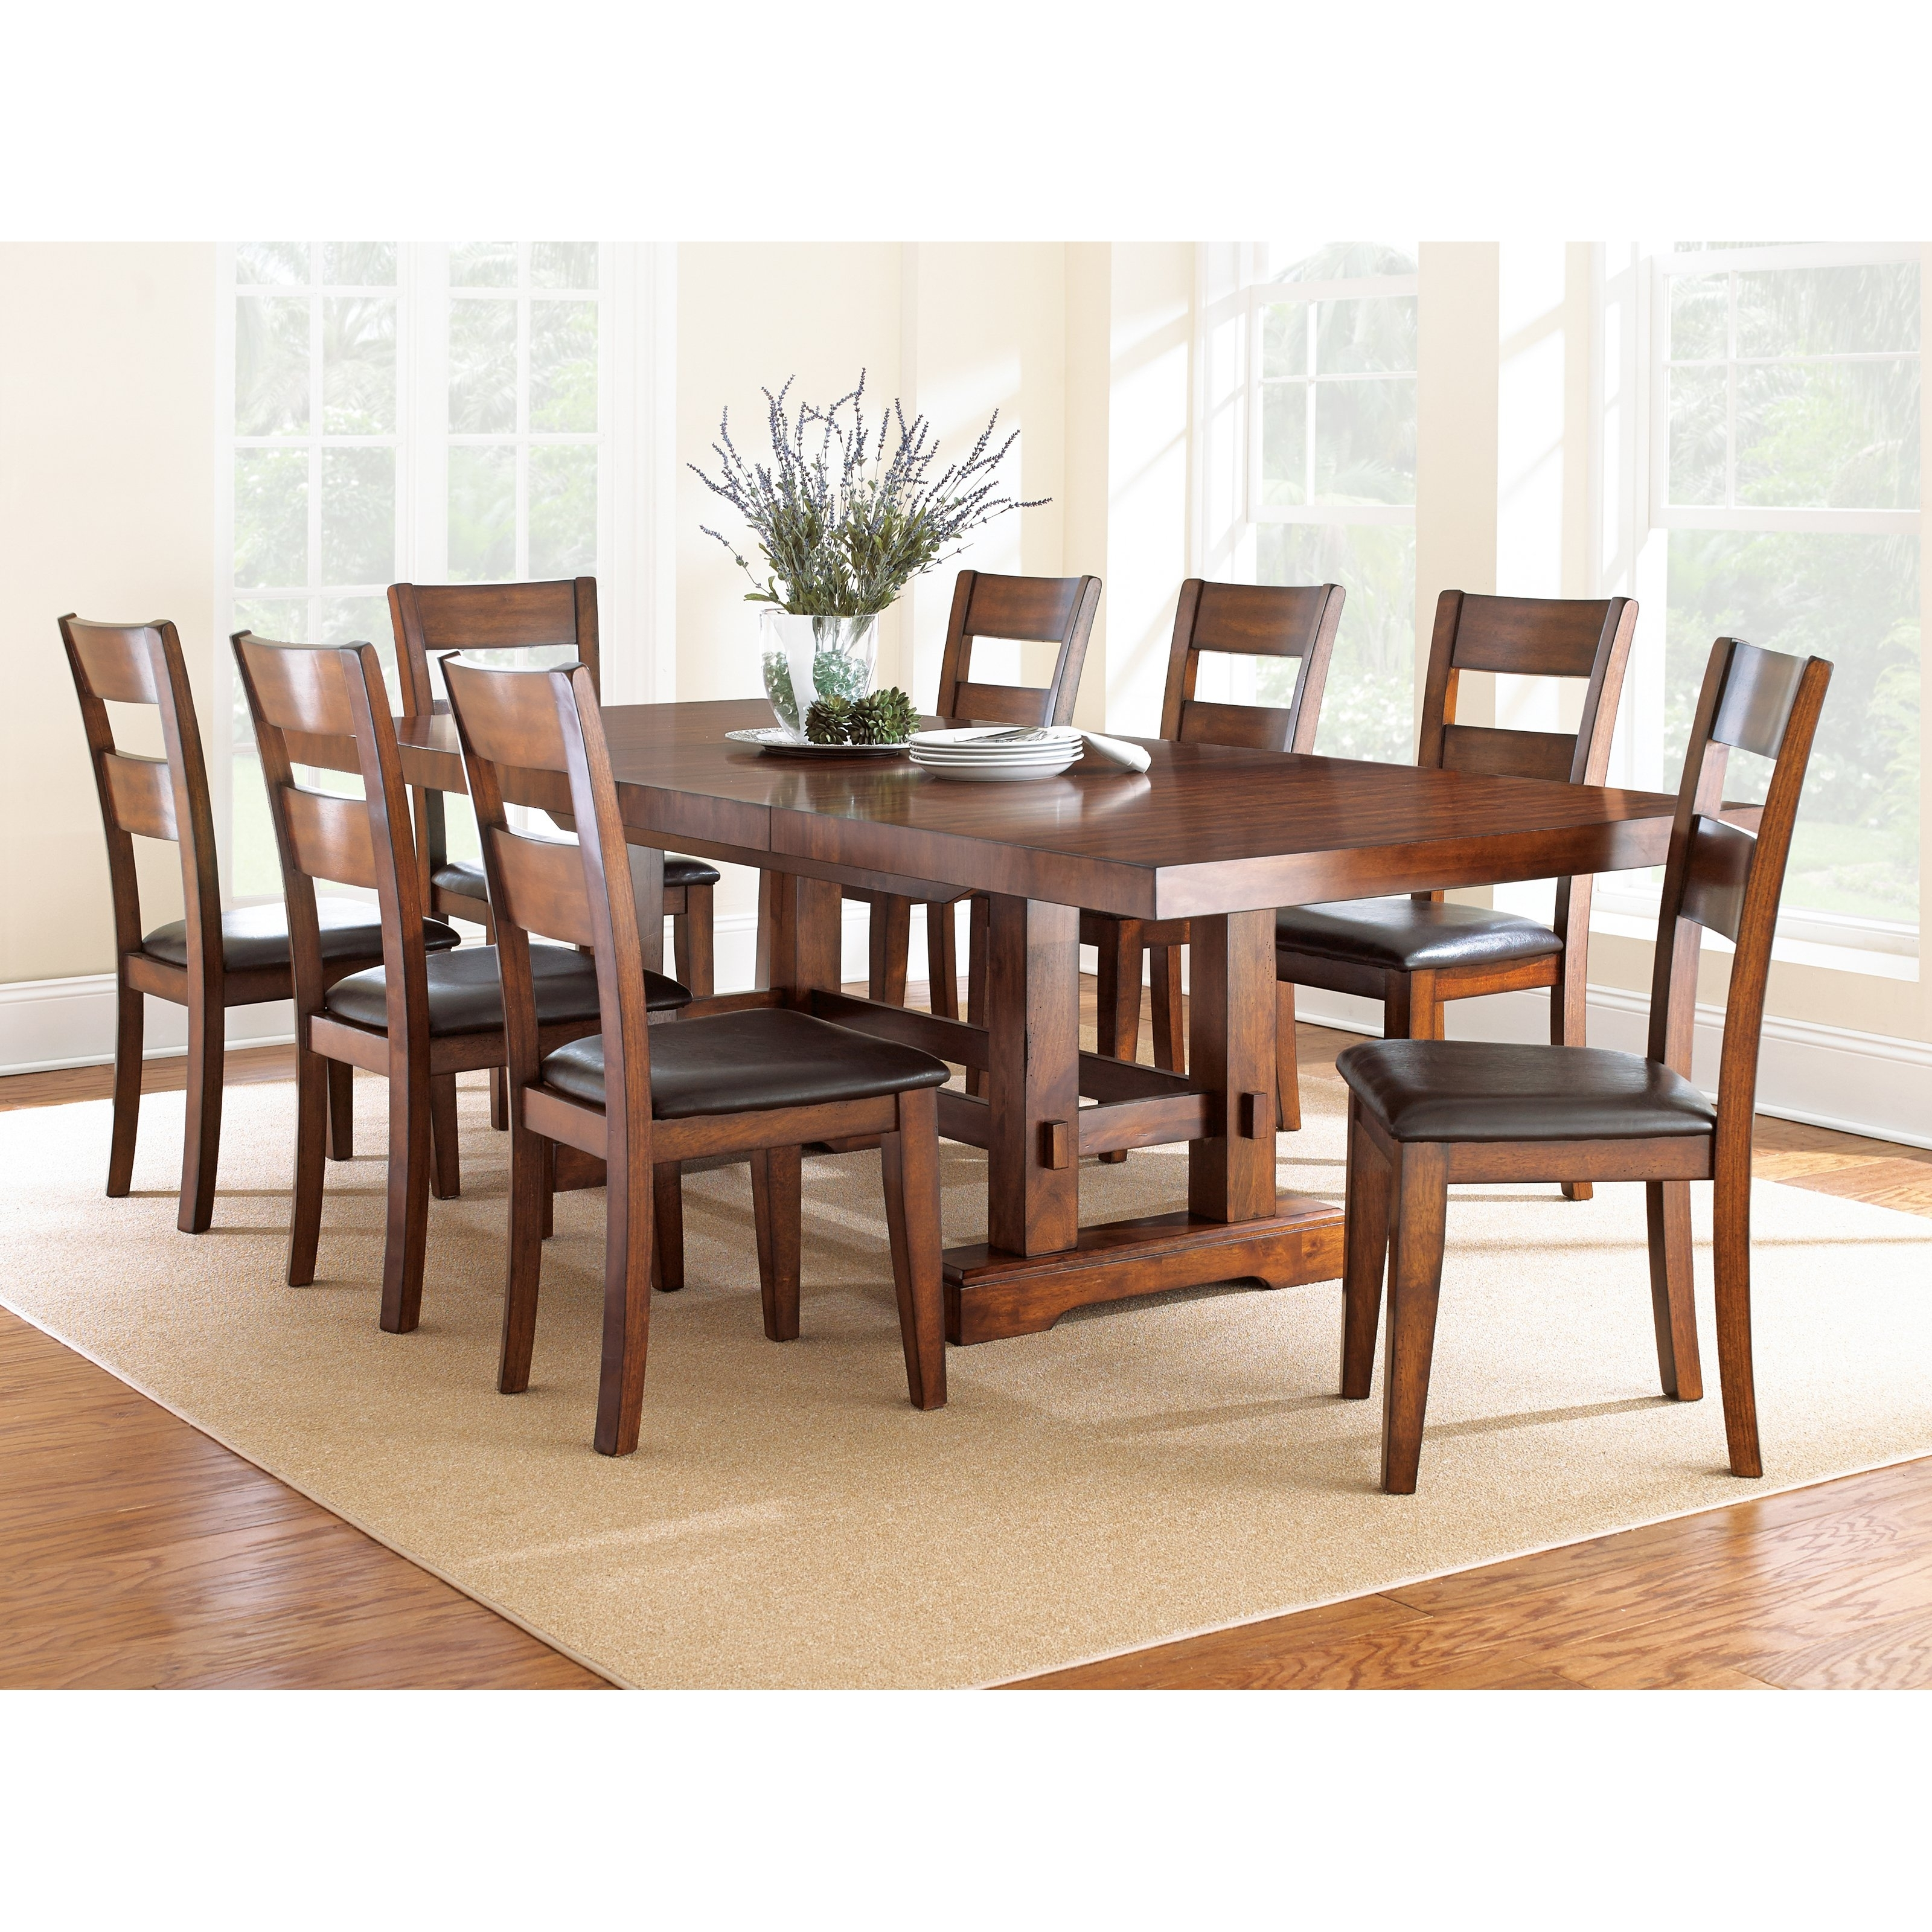 Most Up To Date Dining Tables With 8 Chairs With Steve Silver Zappa 9 Piece Dining Table Set Medium Matching Bar (View 11 of 25)